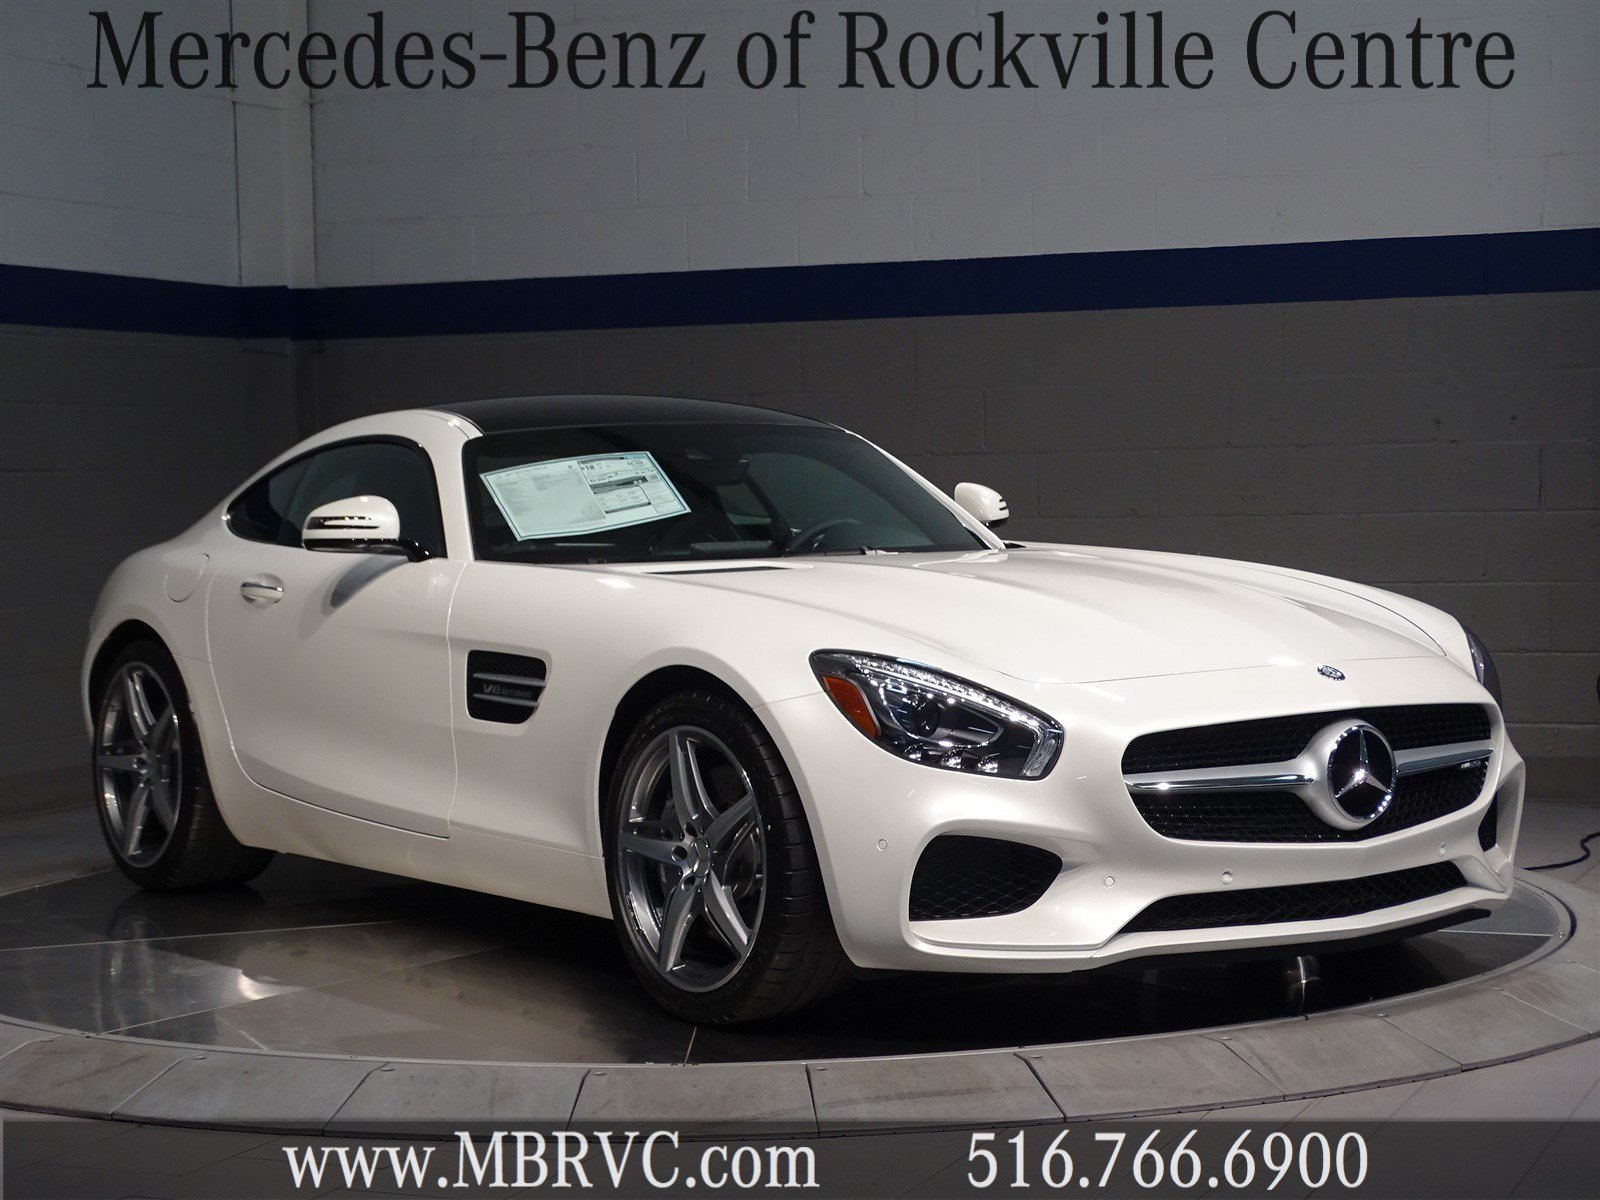 New 2017 mercedes benz amg gt amg gt coupe in rockville for Mercedes benz rockville centre